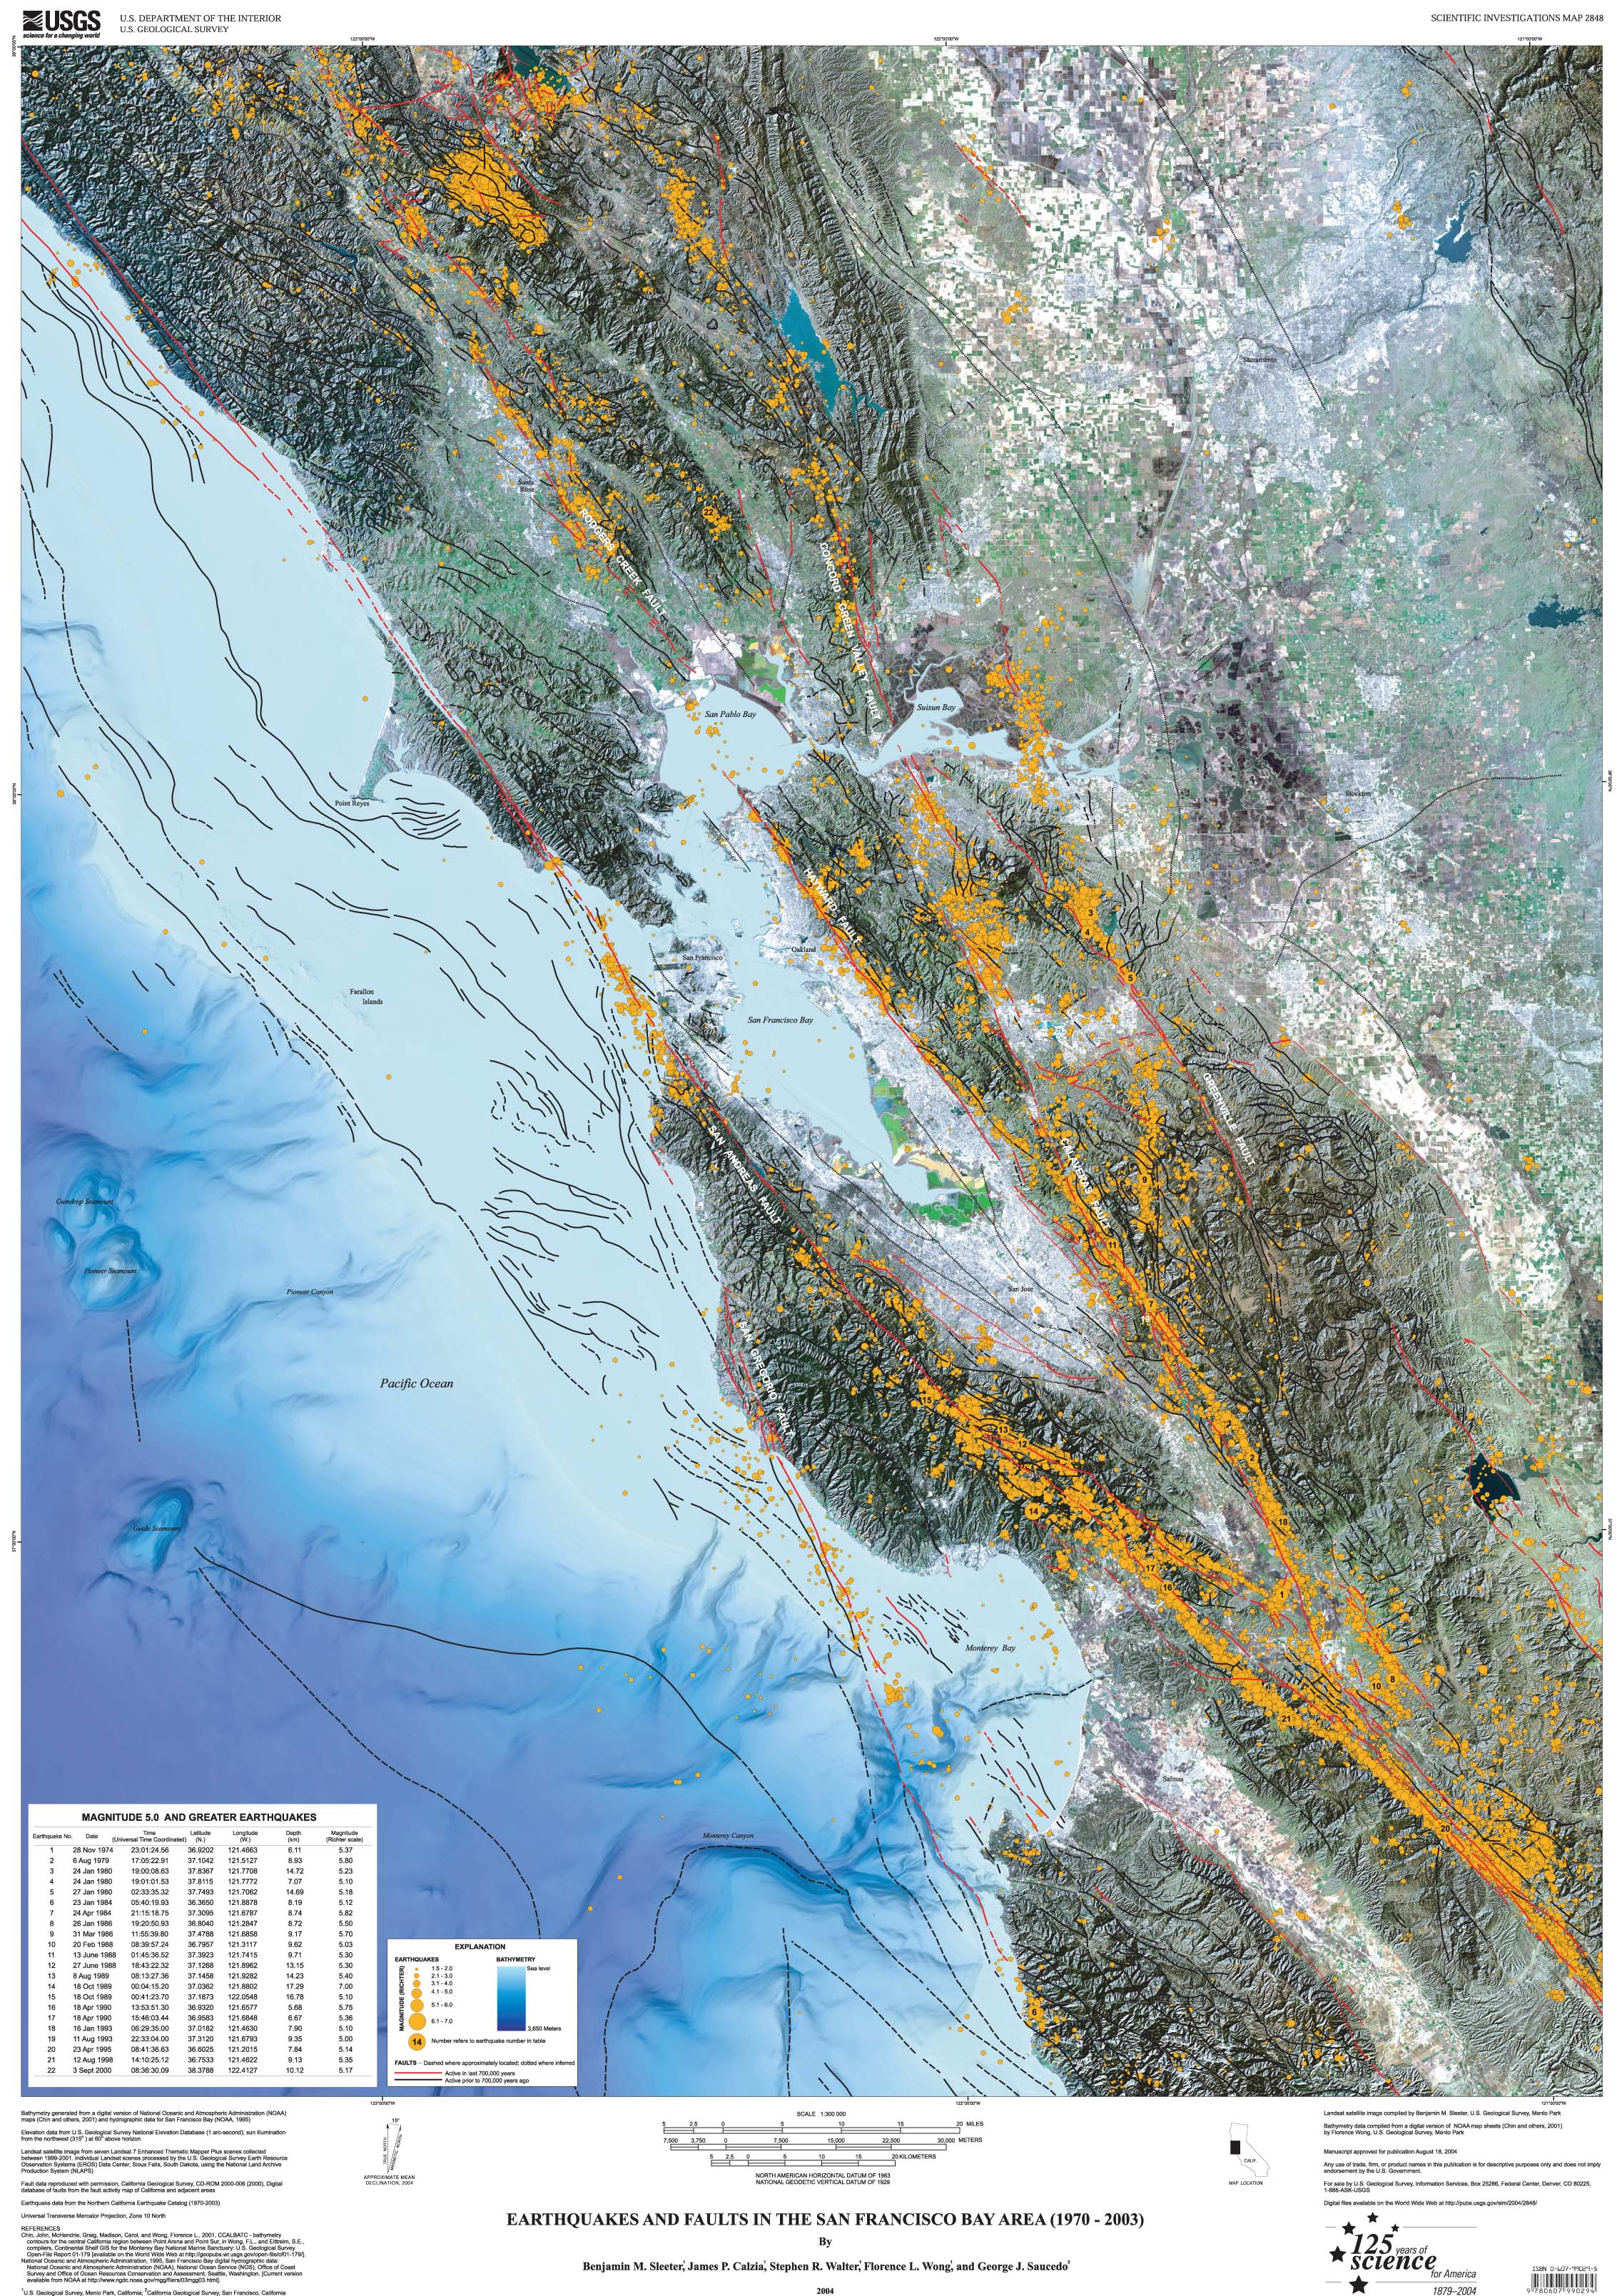 view the earthquakes and faults map . earthquakes and faults in the san francisco bay area ()